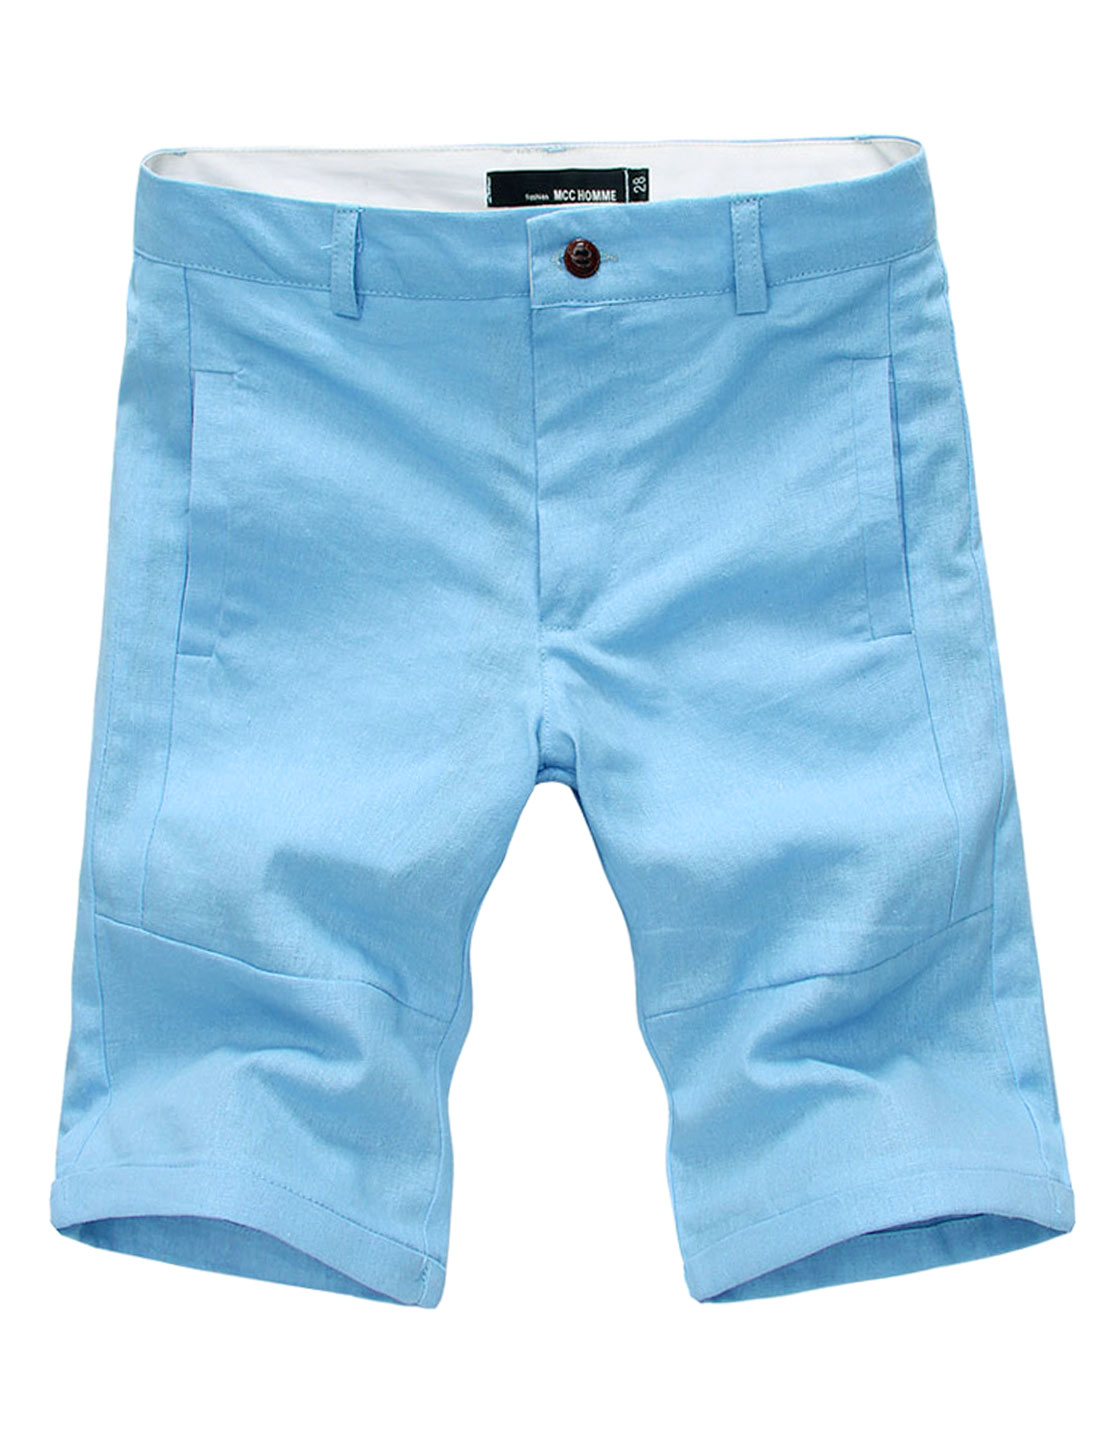 Men Waist Loop Two Side Pockets Stylish Linen Shorts Baby Blue W34